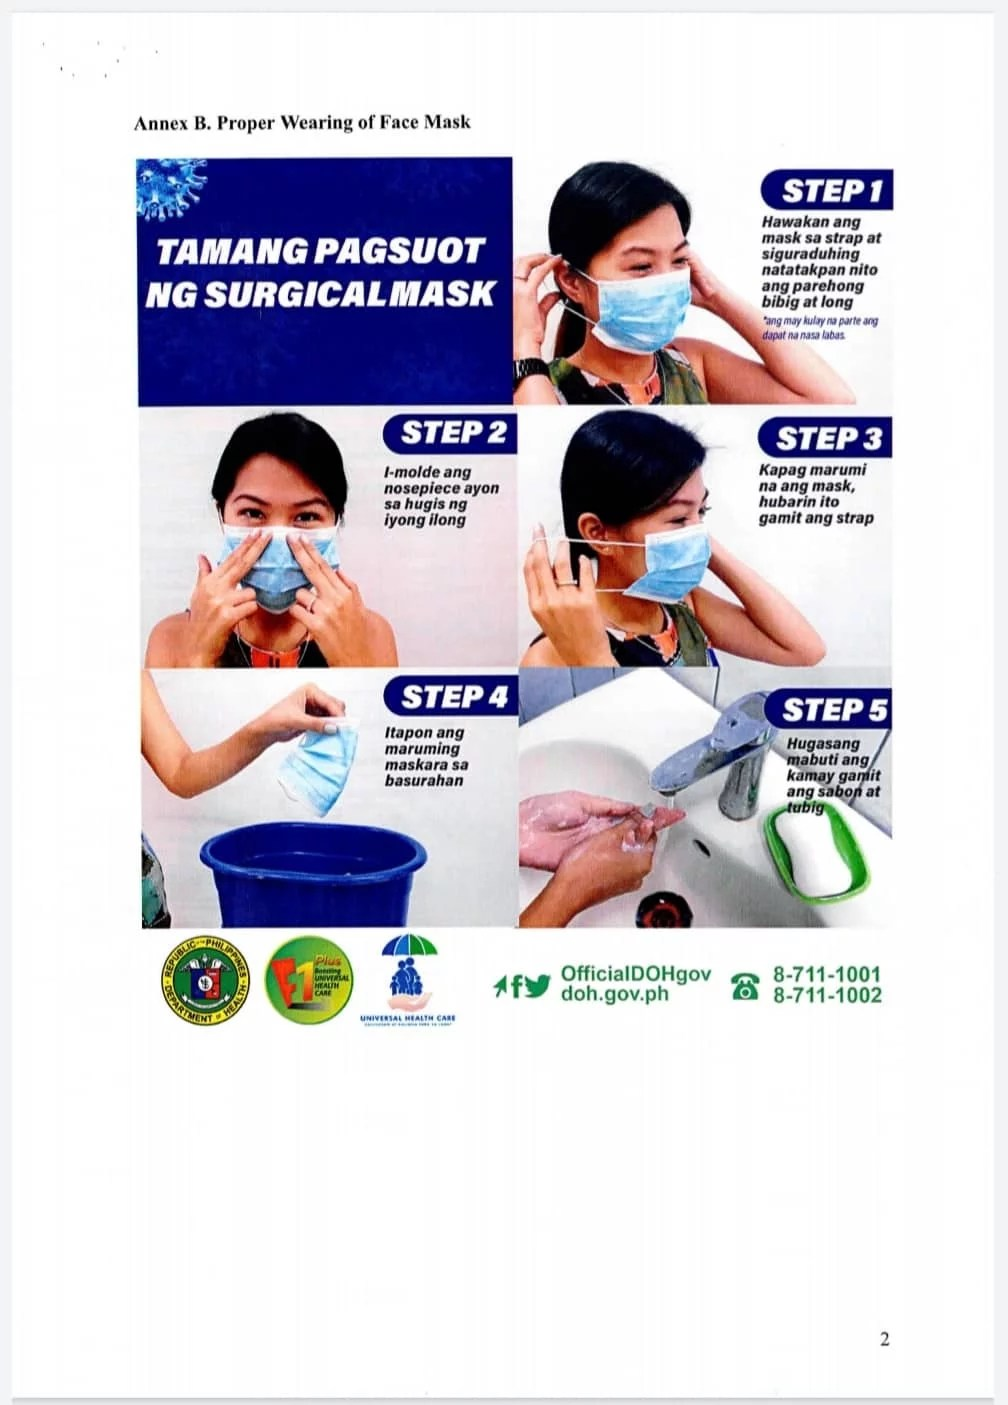 Illustration on how to use face mask